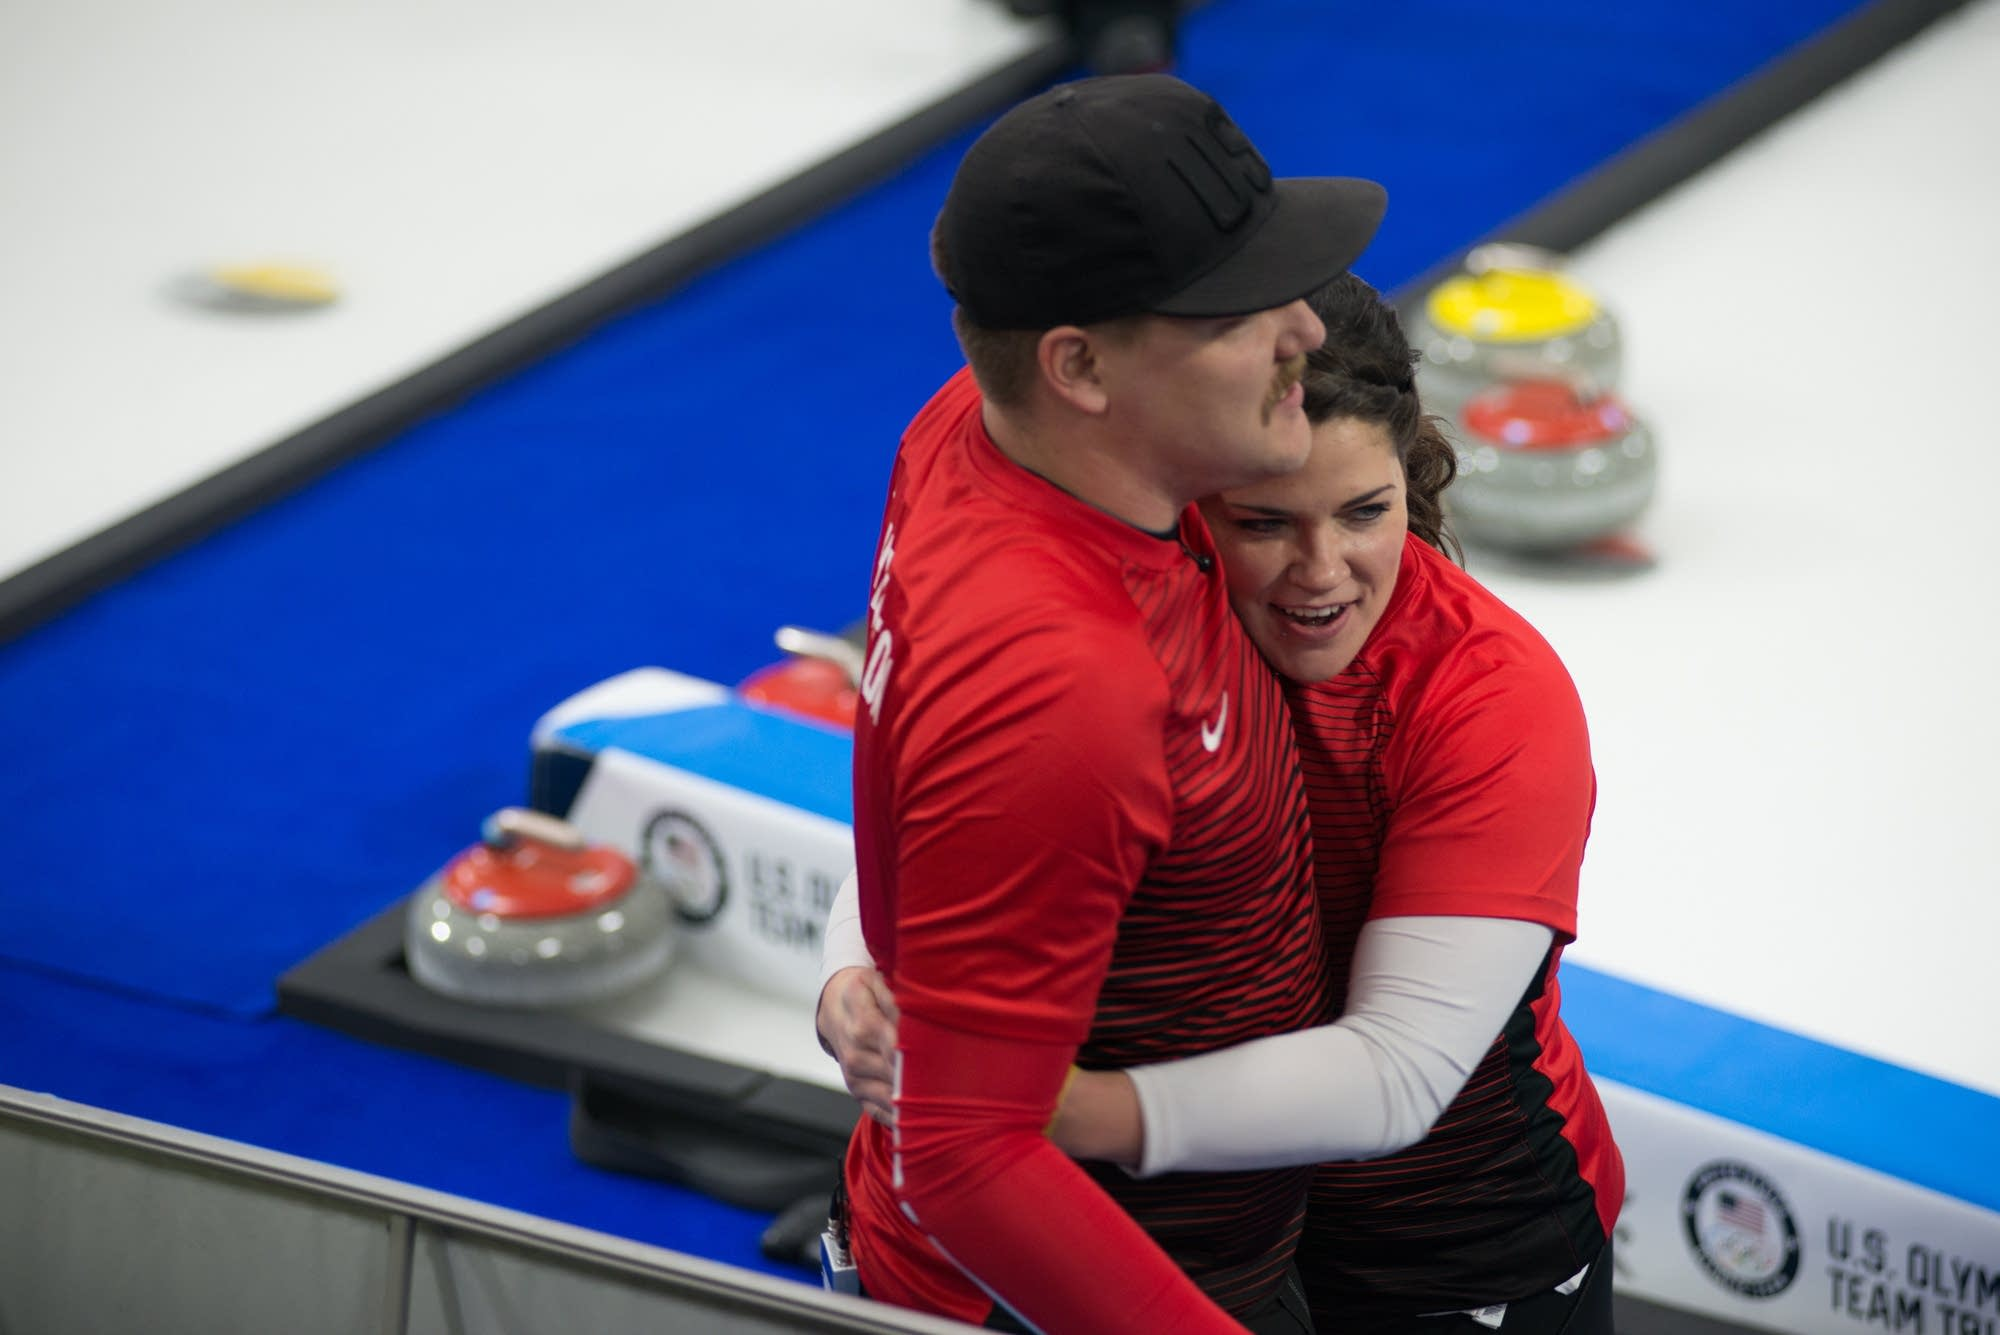 Sibling curling duo Matt and Becca Hamilton celebrate a 6-5 win.